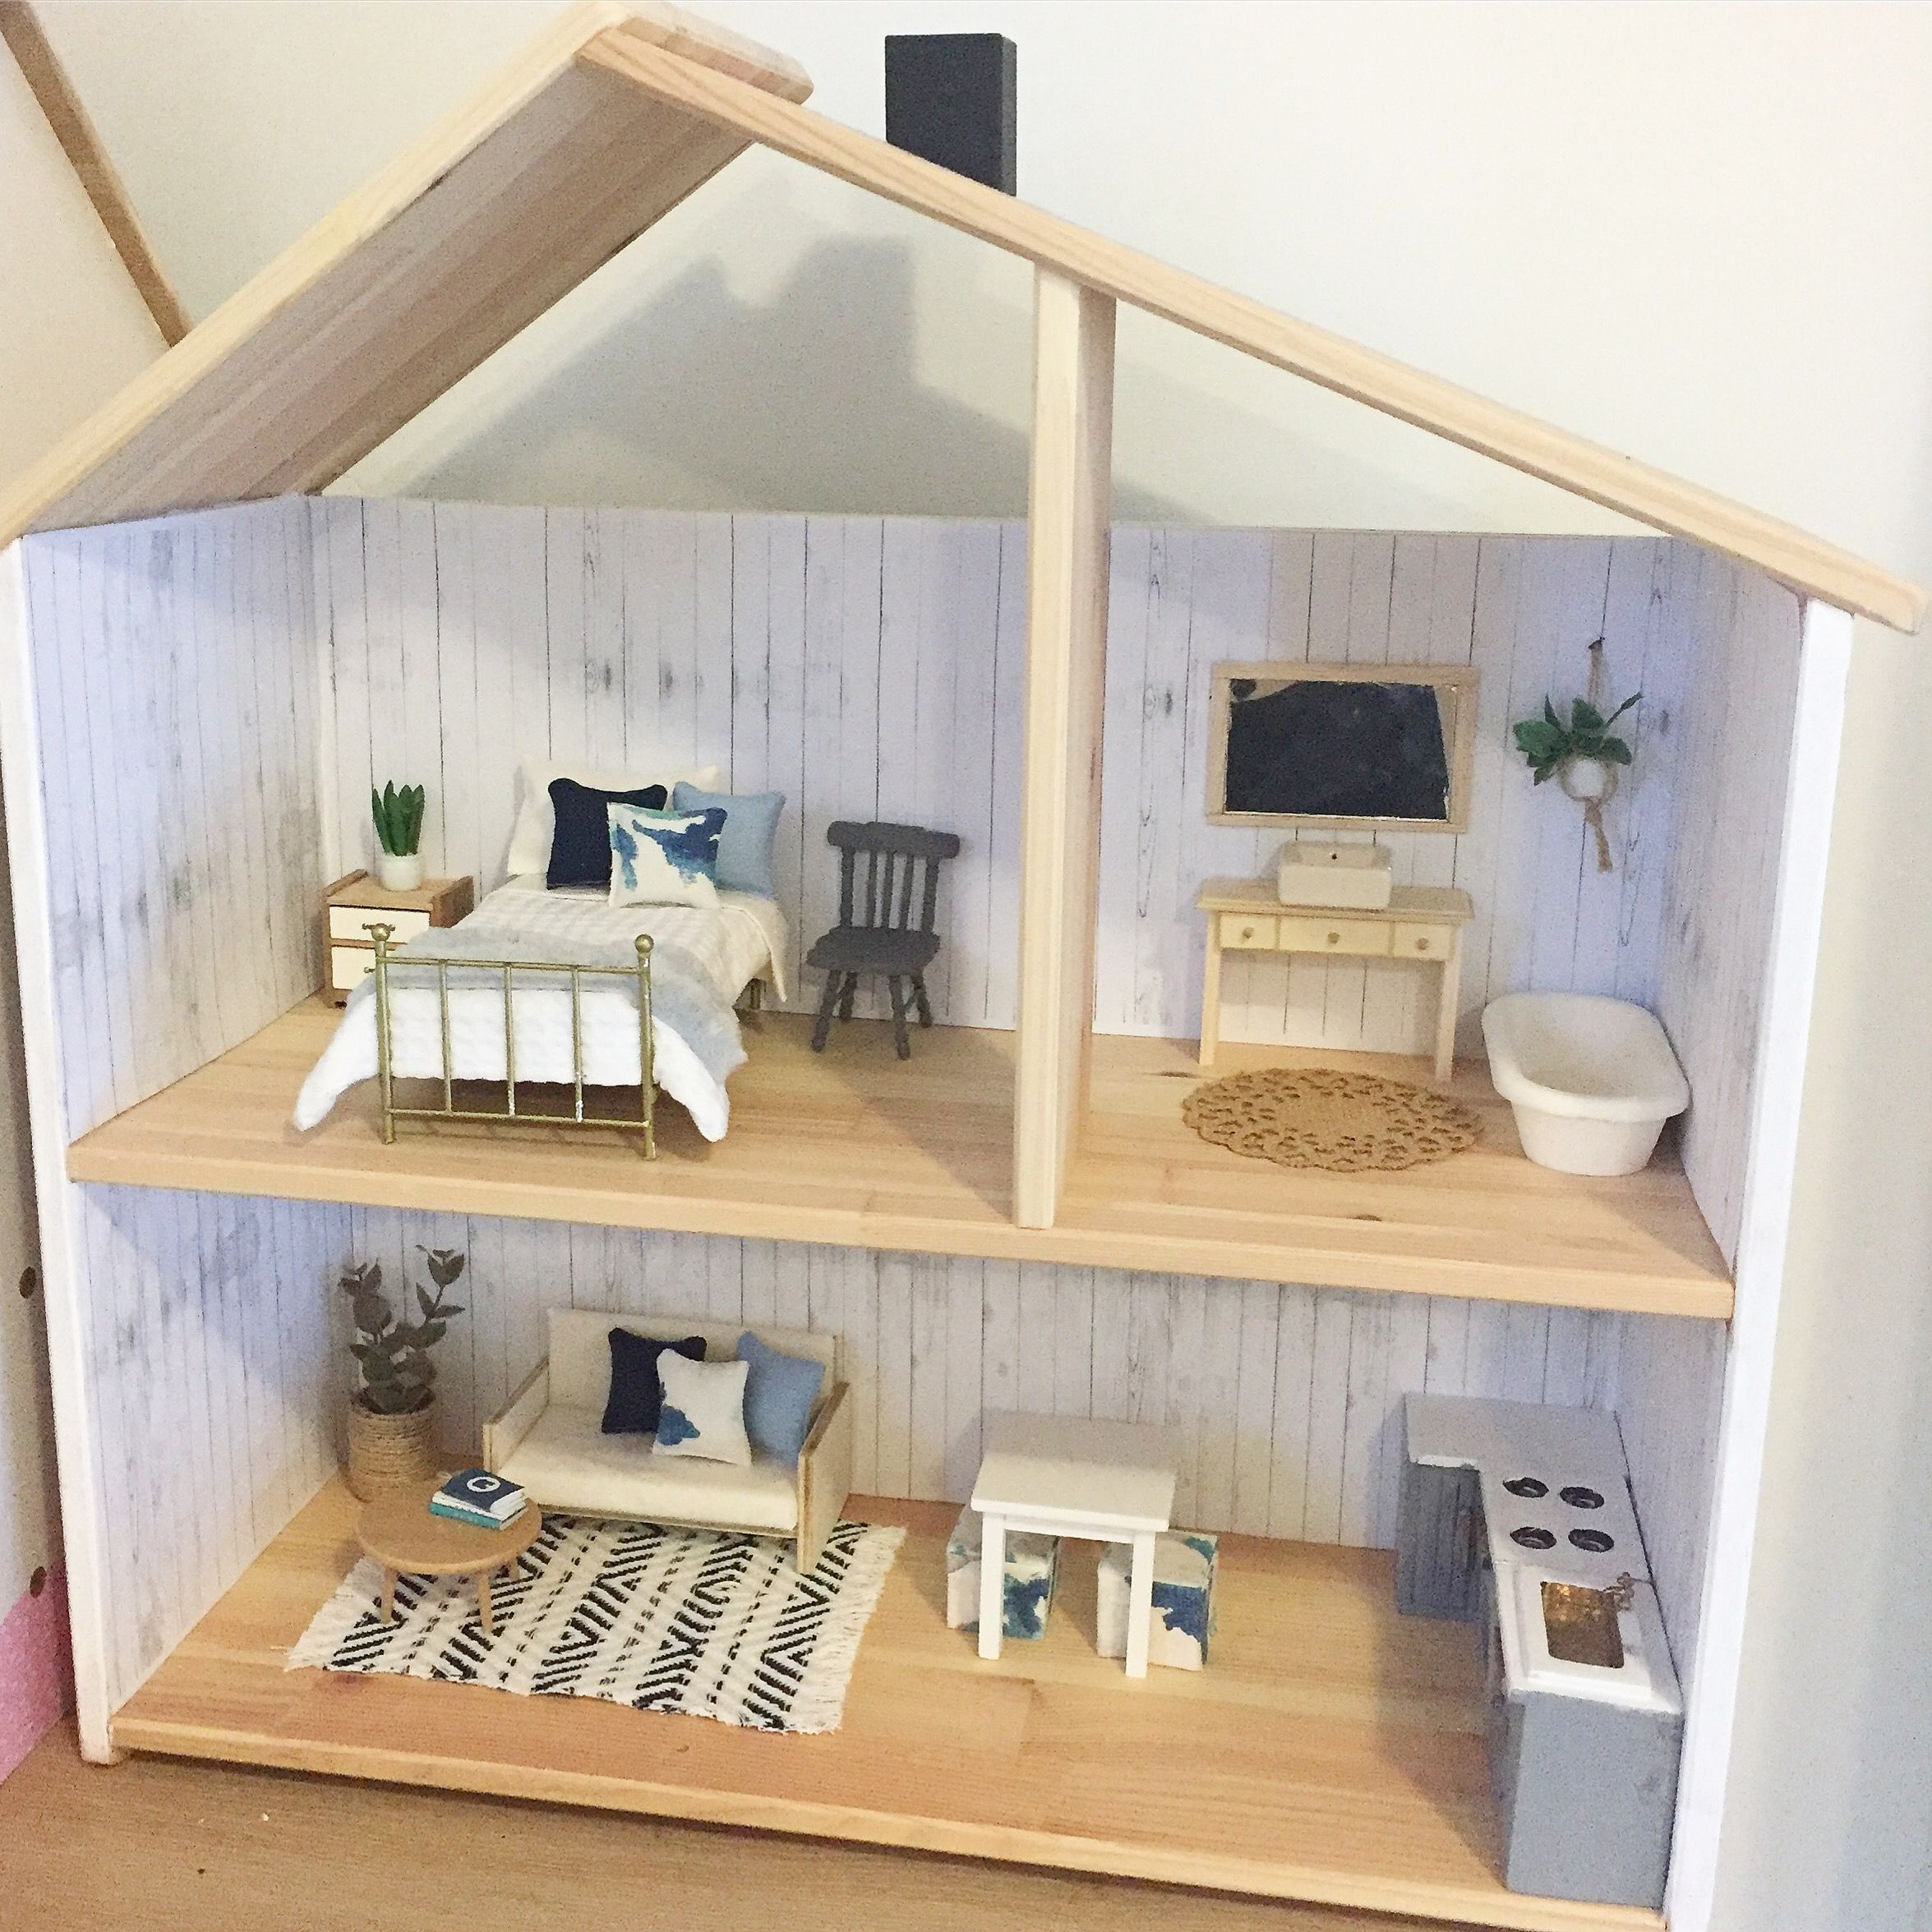 Modern dollhouse ikea flisat 112 scale beach coastal interior follow onebrownbear on instagram